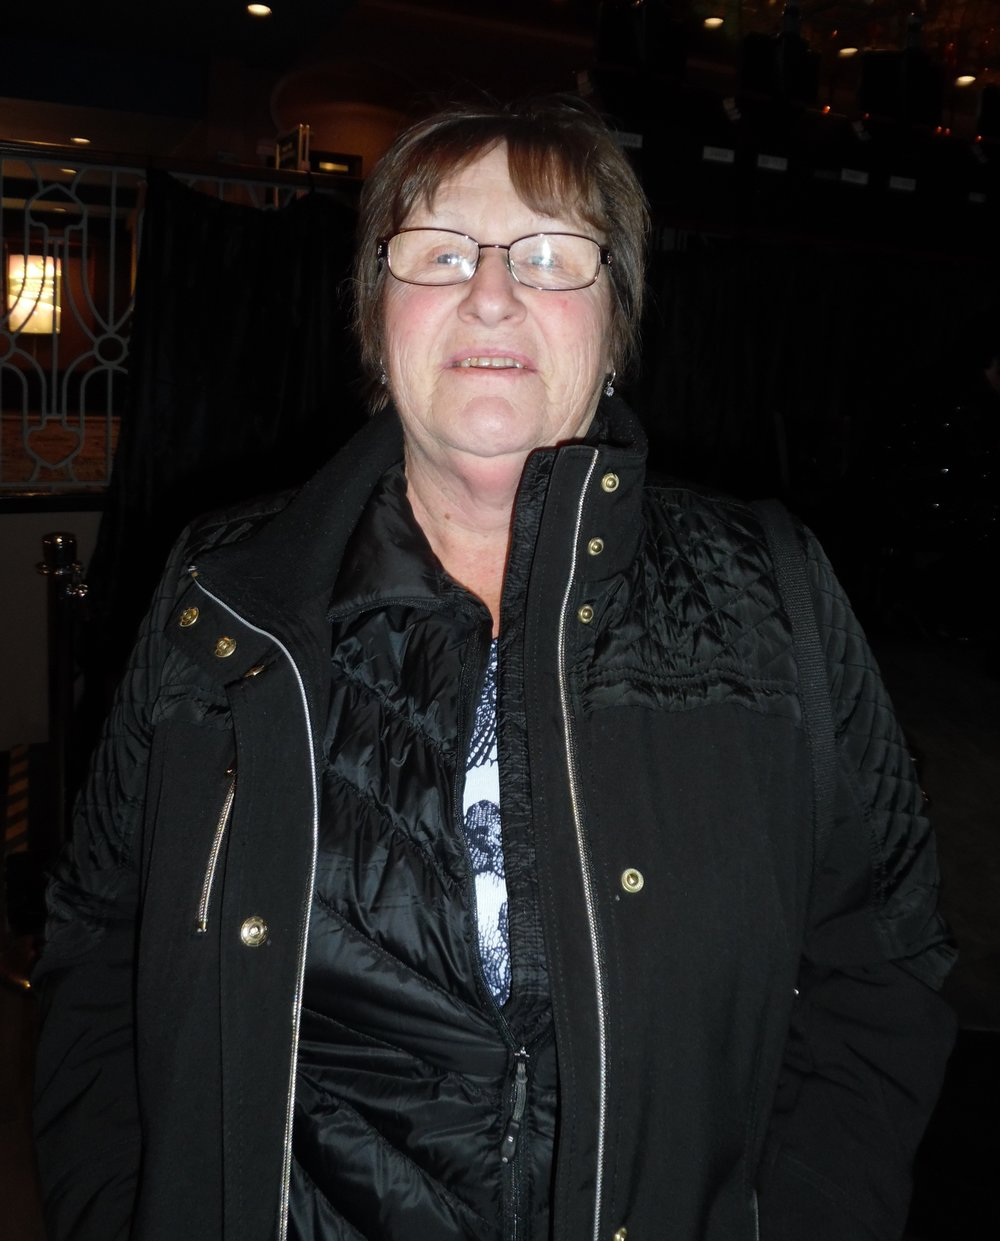 ETA fan Donna Young, January 5th, 2018 at Flamboro Downs.